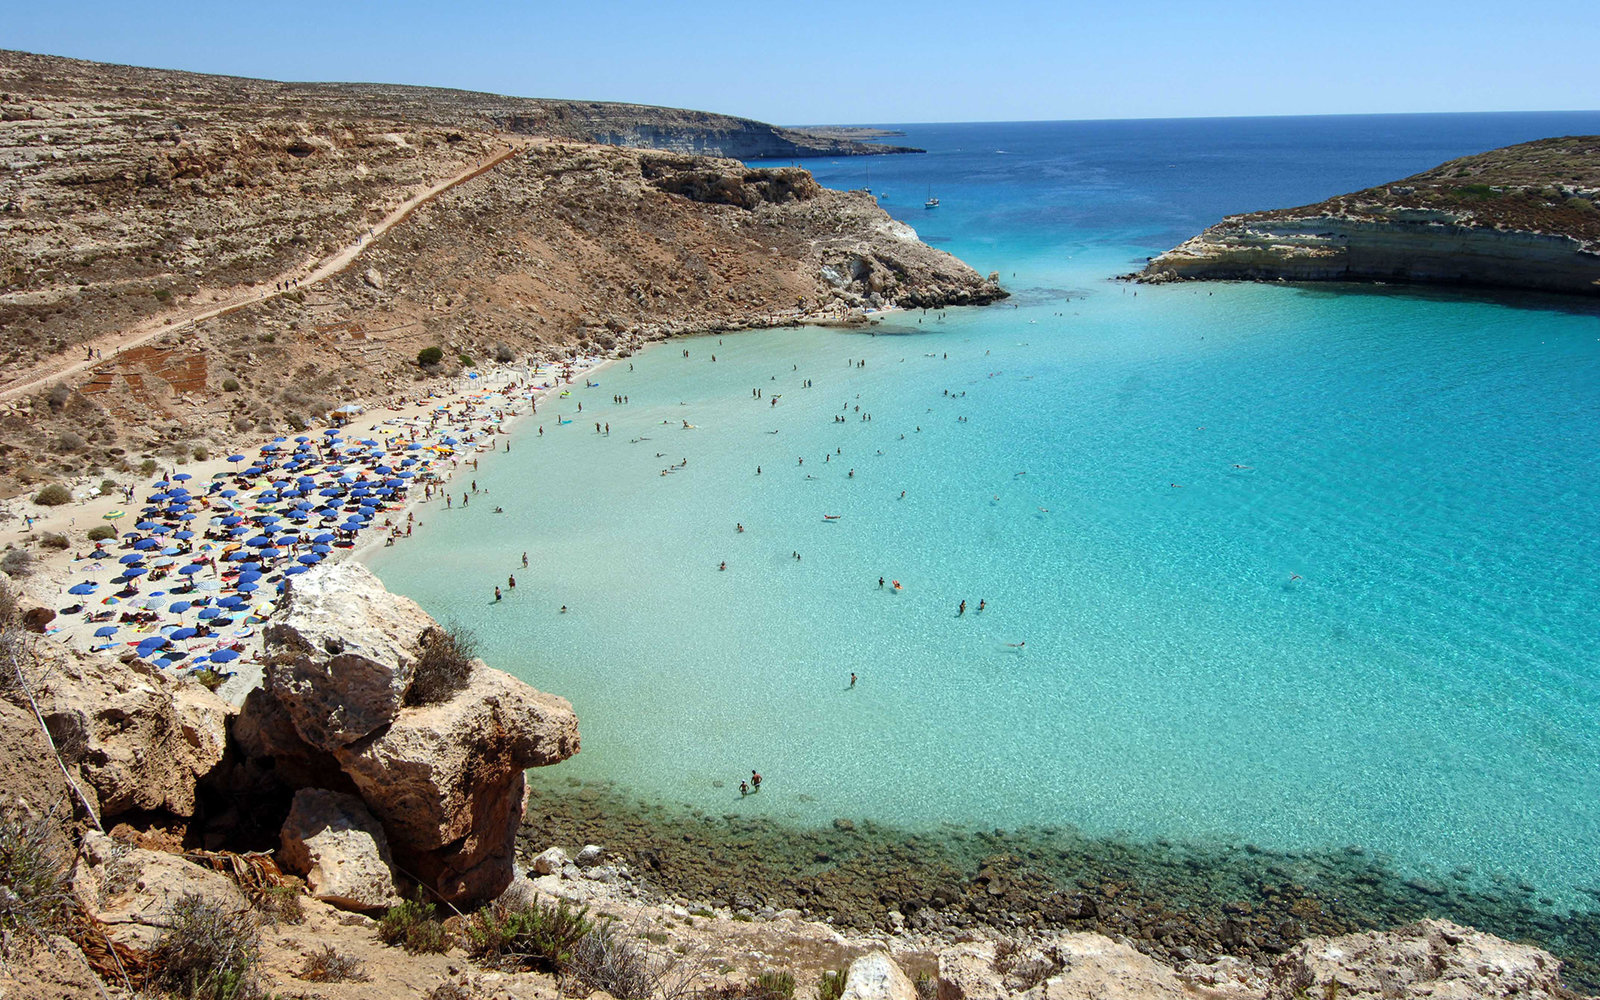 ITALY - SEPTEMBER 04:  The  Spiaggia dei Conigli  or Rabbit Beach in Lampedusa, Italy, Monday, September 4, 2006. With its sun-kissed beaches and crystal-clear sea, Lampedusa could be a playground for the rich and famous. Instead, the 20-square-kilometer